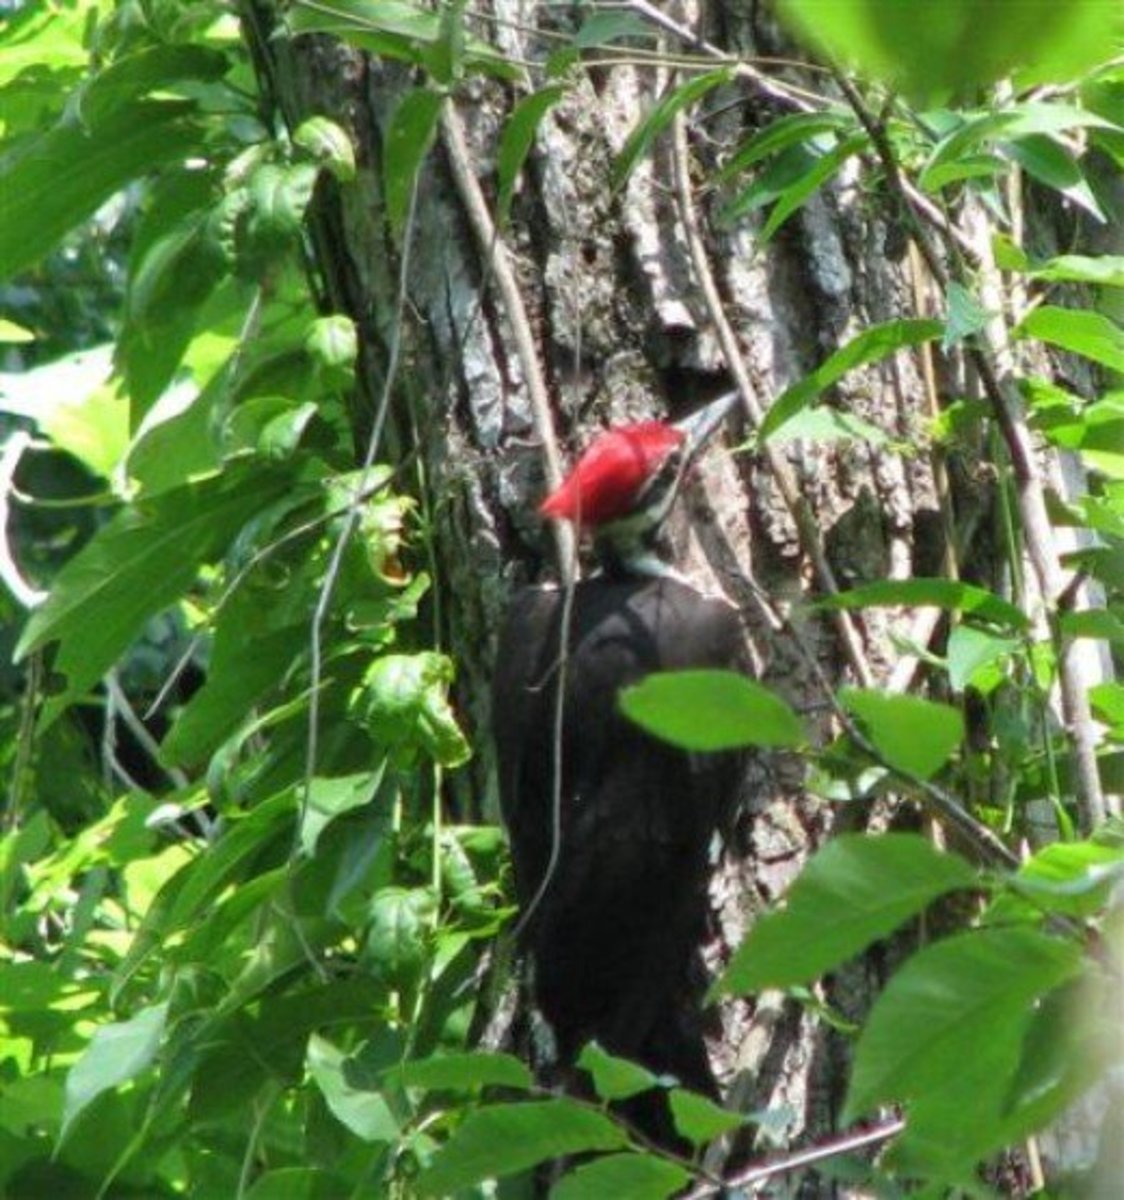 Pileated woodpeckers are large birds which are a match for rat snakes.